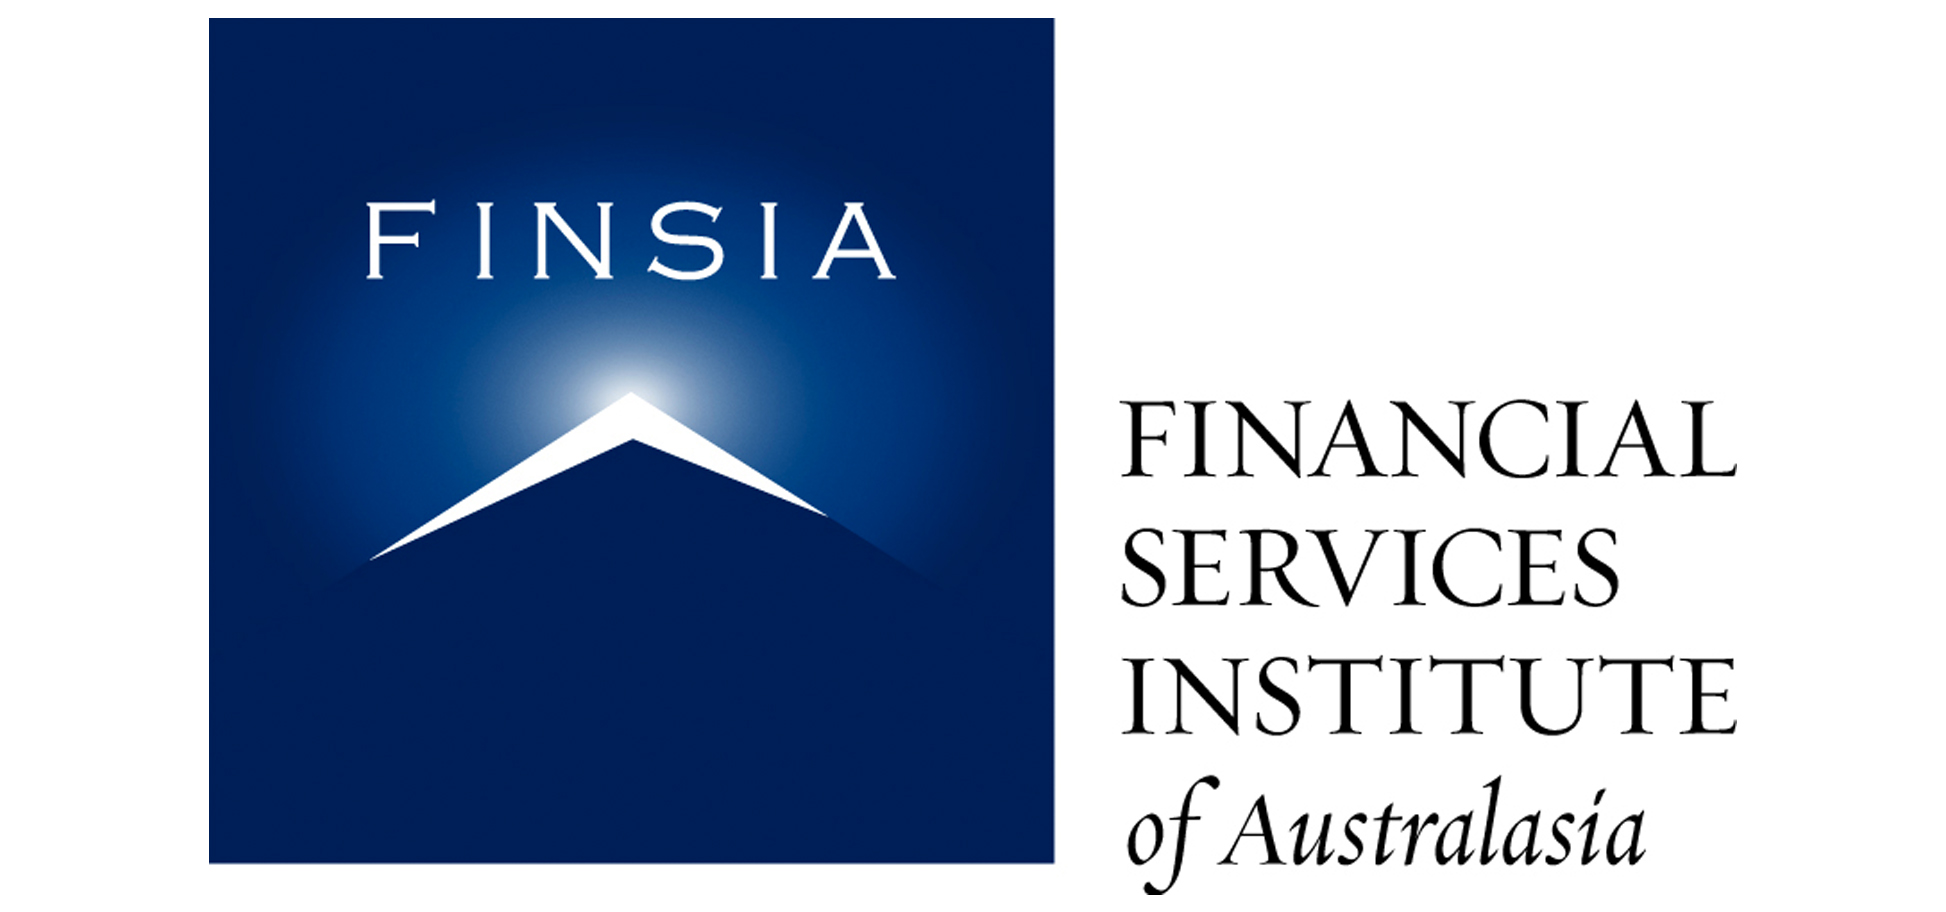 Be eligible for admission as a Senior Associate of FINSIA